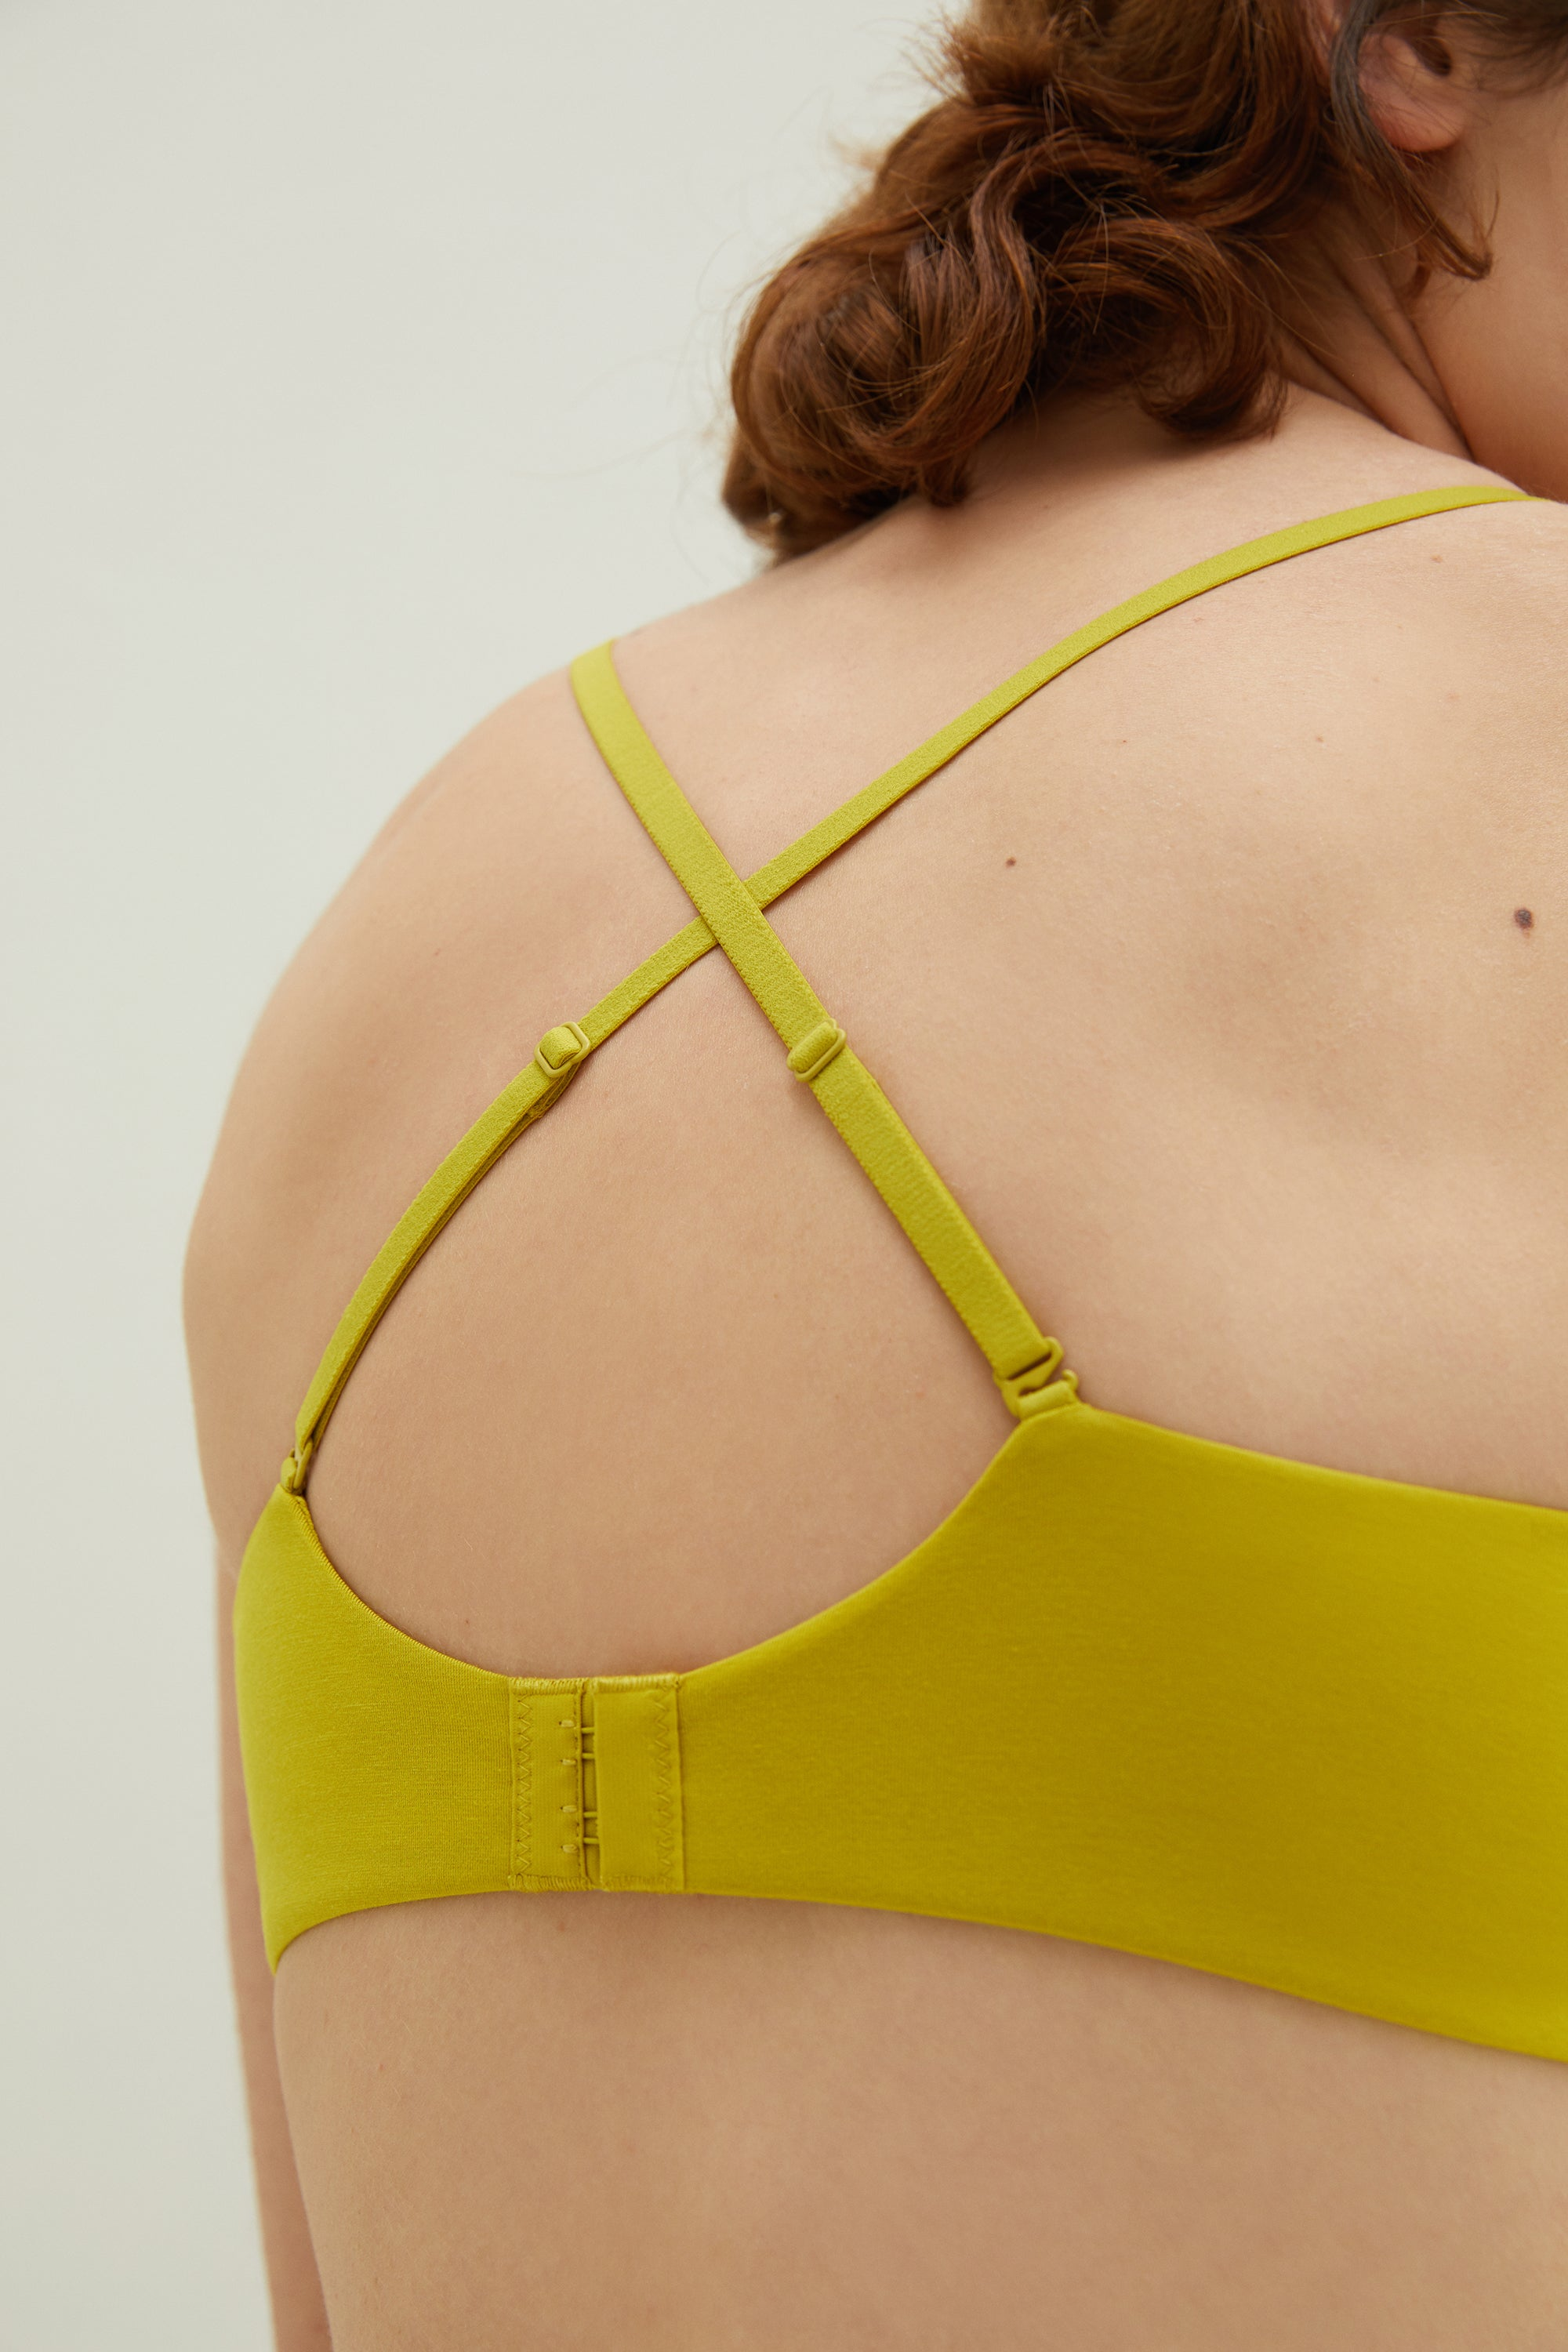 NEIWAI Convertible Soft Modal Bra in Cress Green- Convertible Straps